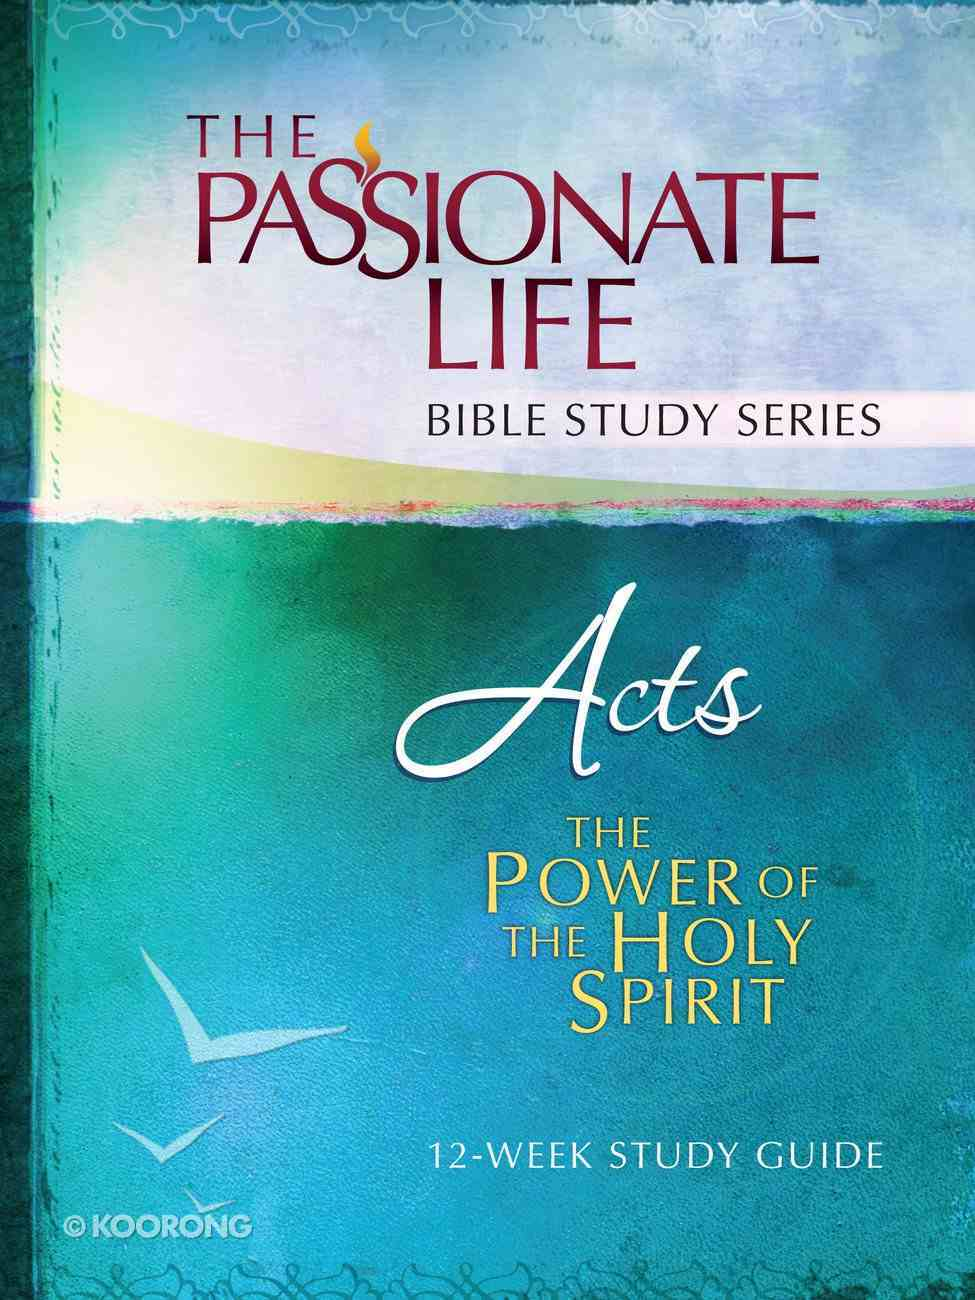 Acts - the Power of the Holy Spirit (The Passionate Life Bible Study Series) eBook